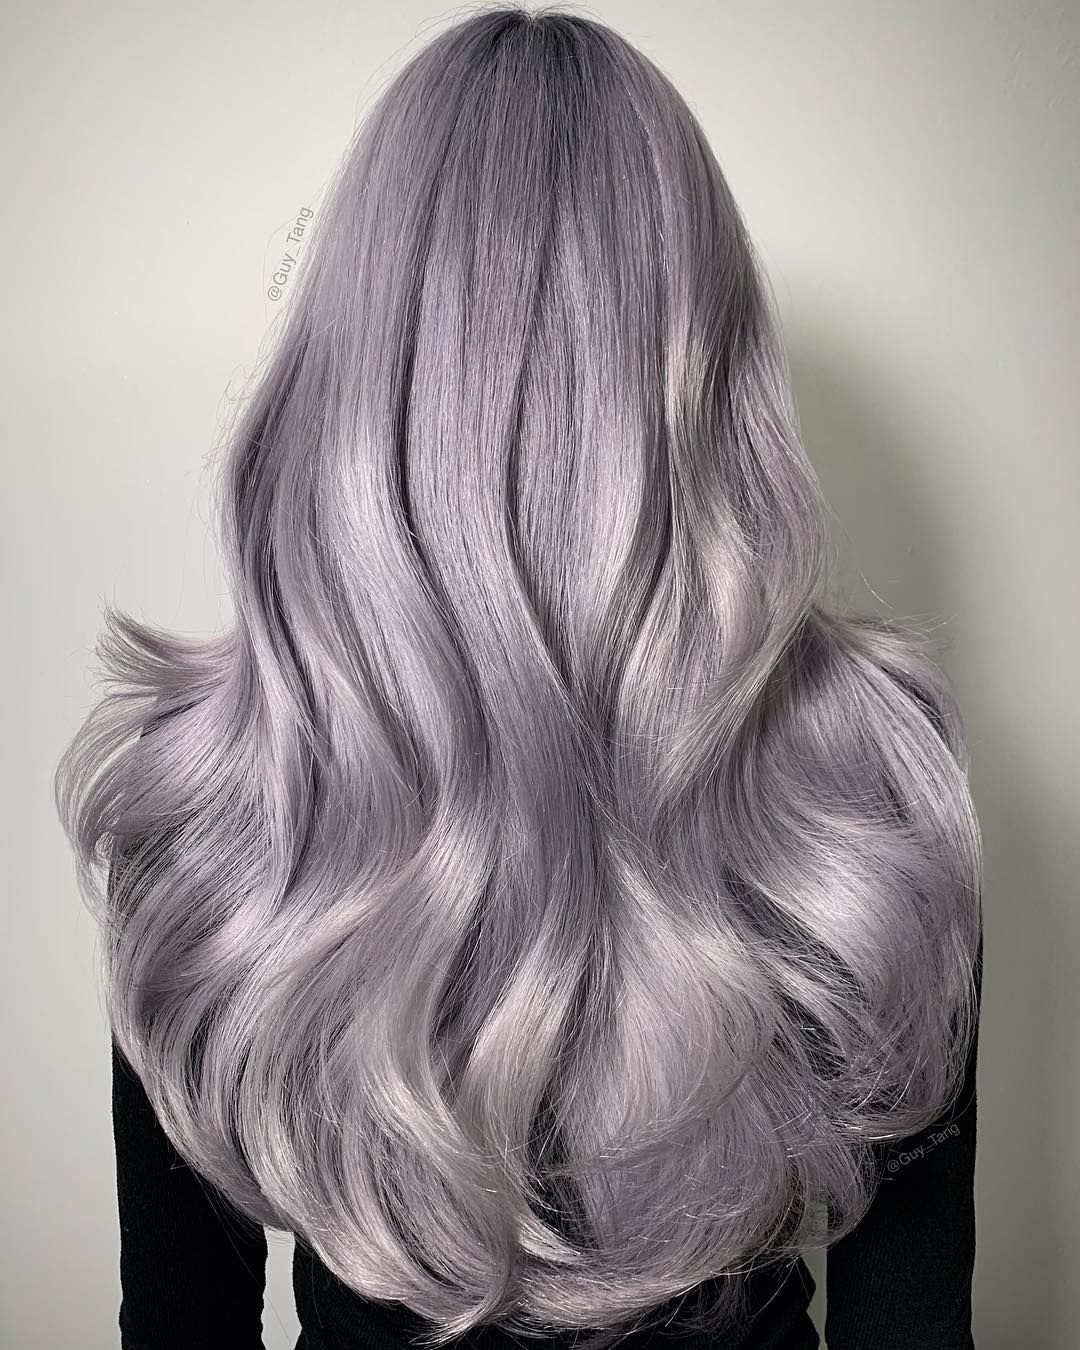 Lavender Gray Is Spring's Most Unexpectedly Cool H